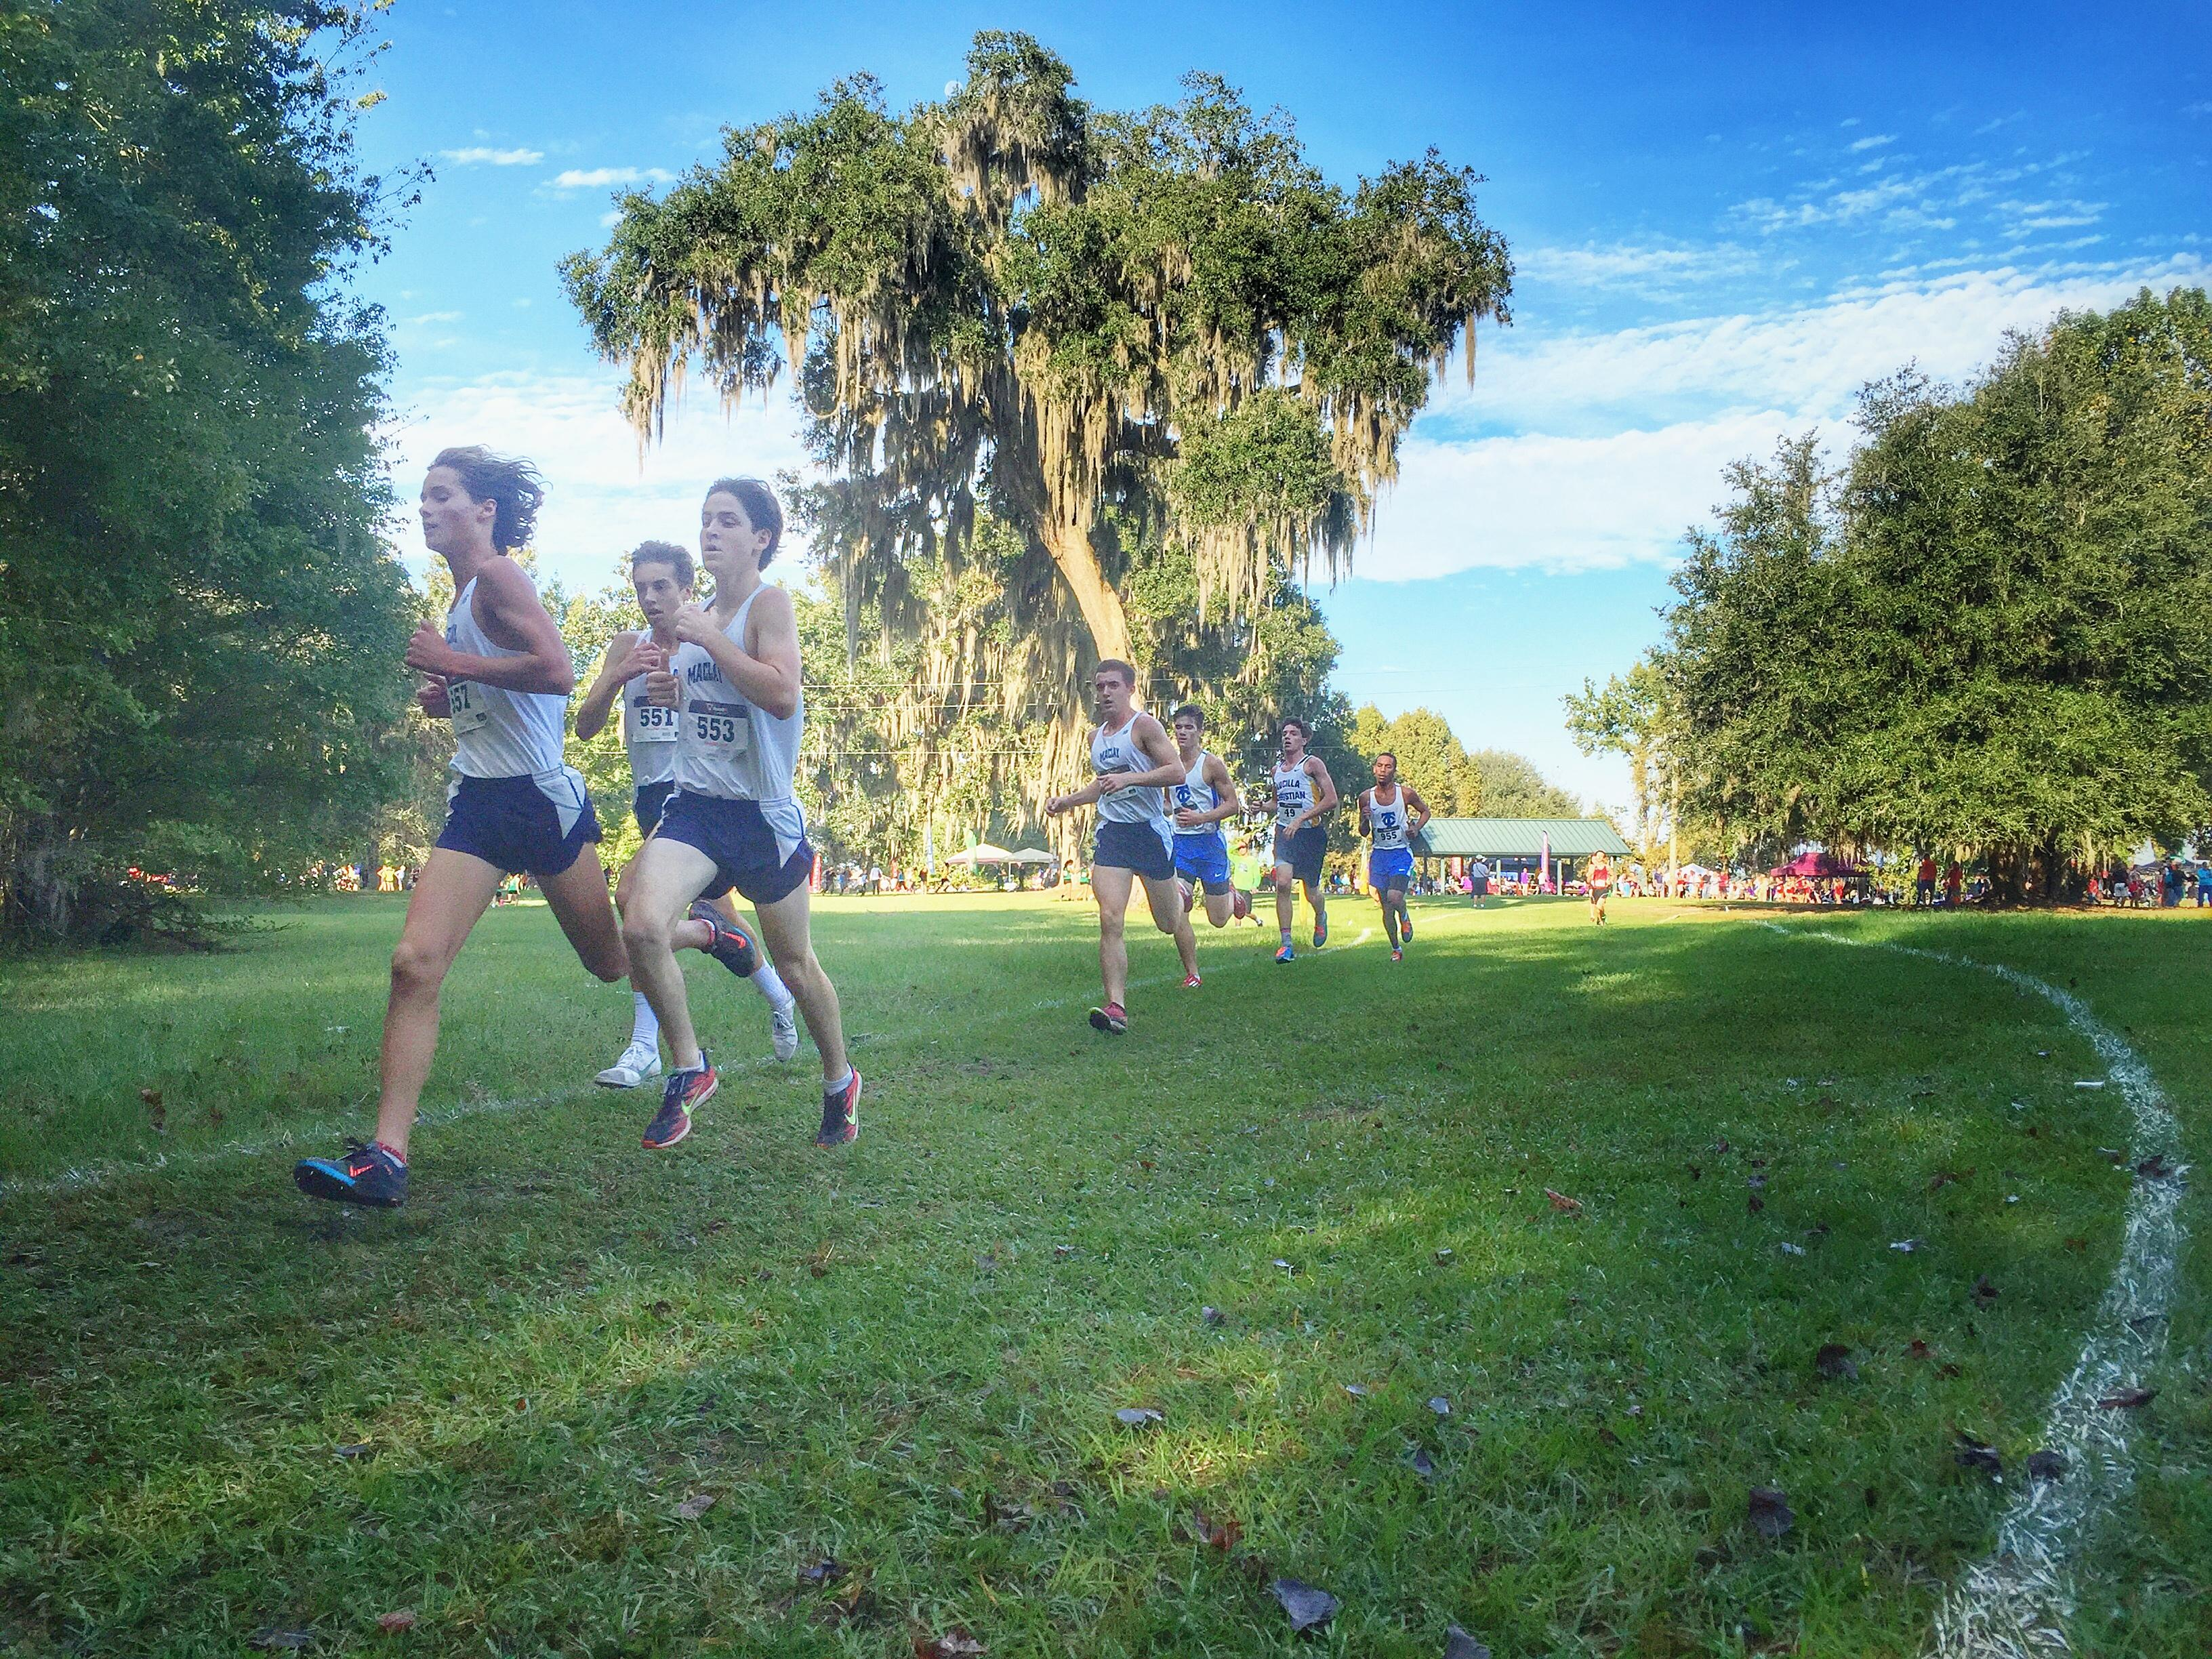 Maclay's top four prepare for the final mile during Saturday's Region 1-1A meet in Lake City. The Marauders won a regional title, setting up their run towards a state title next week.